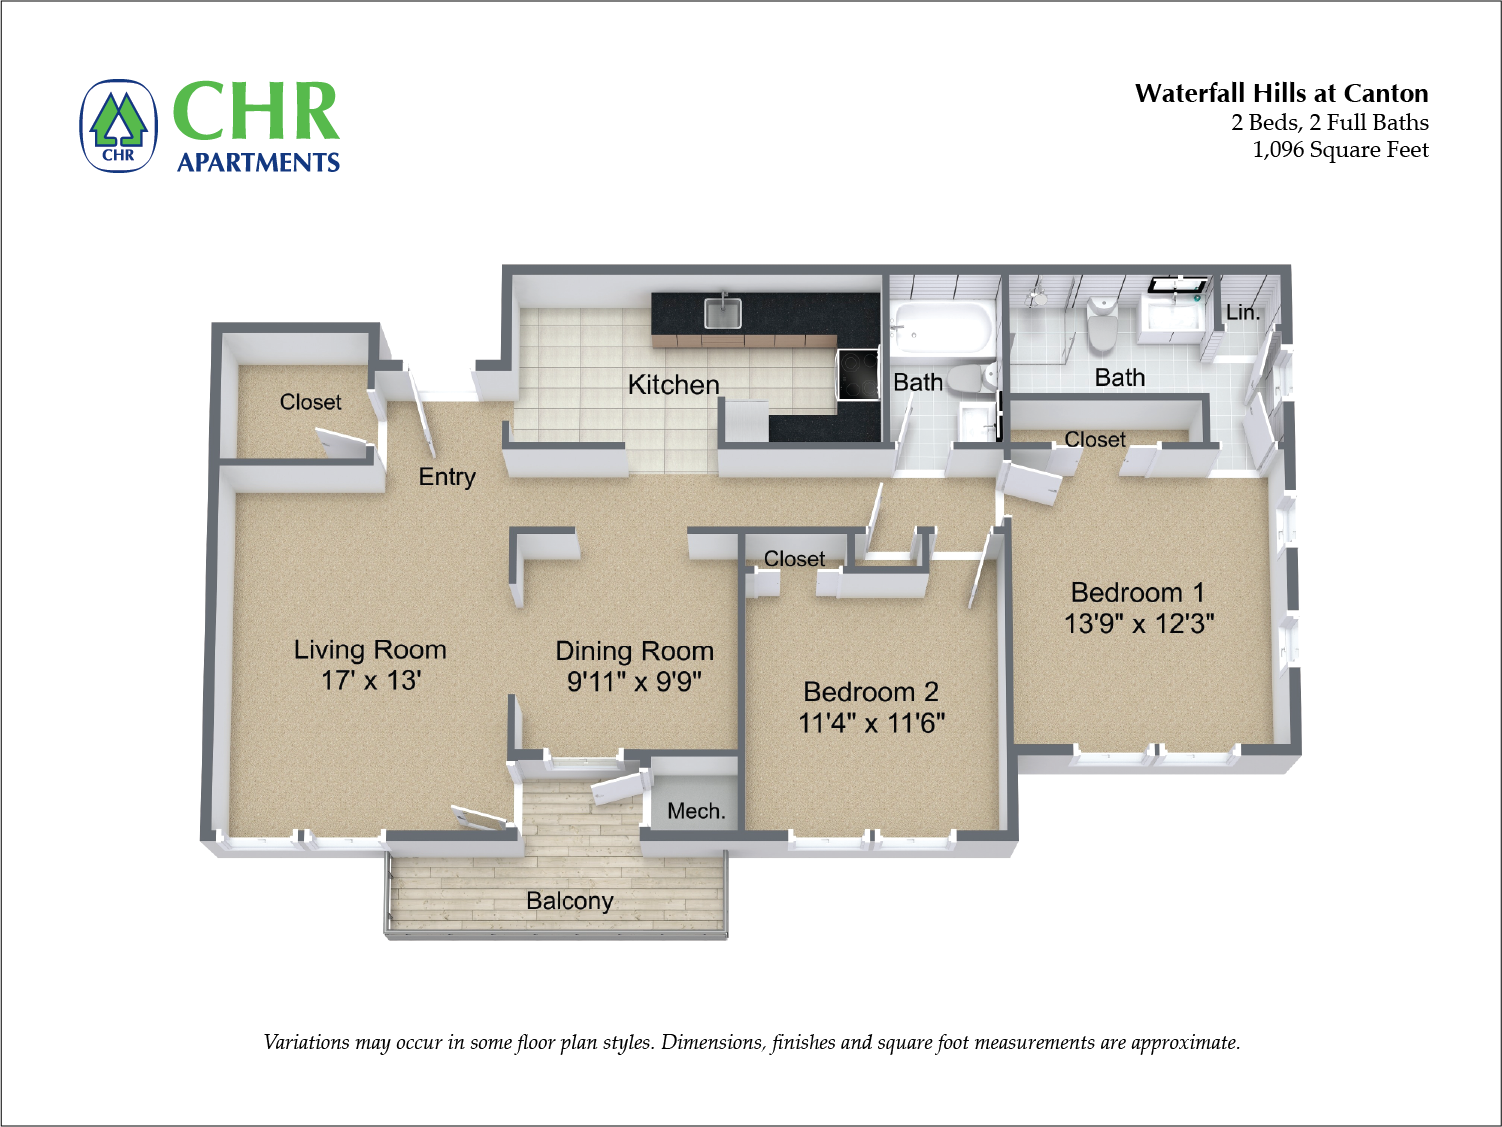 Click to view 2 Bedroom with Eat-In Kitchen floor plan gallery